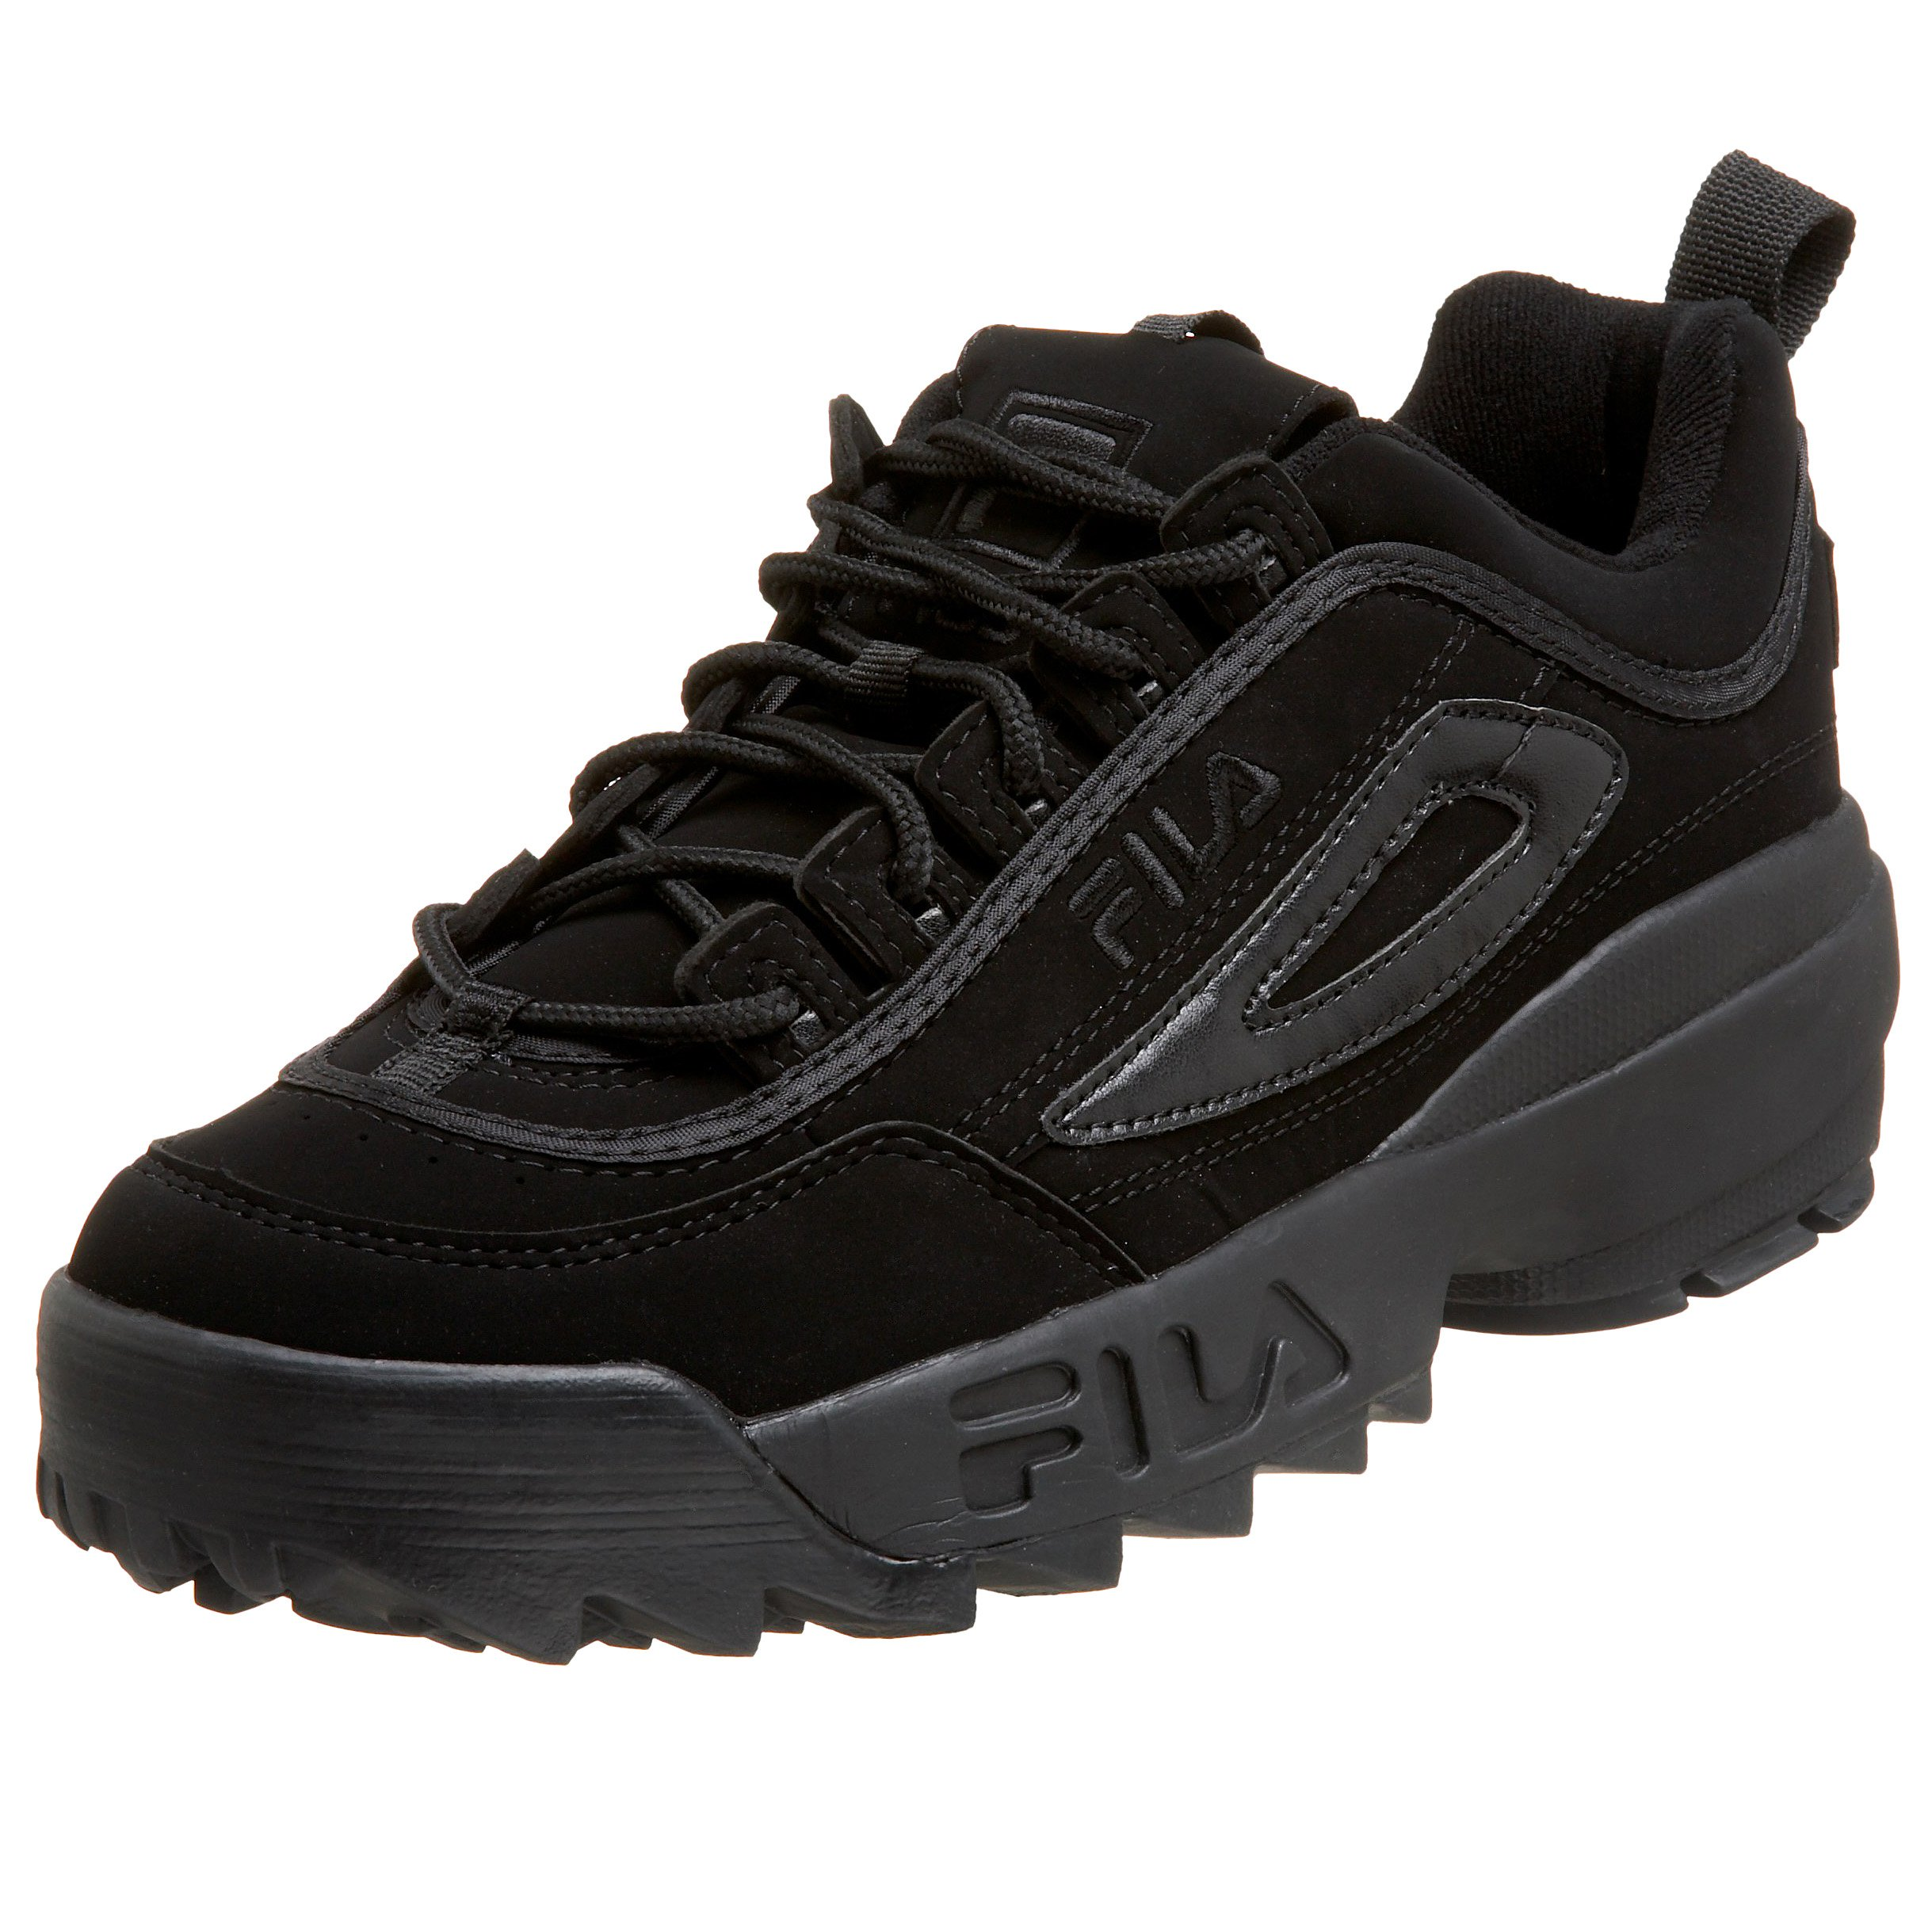 Fila Men's Strada Disruptor, Triple Black